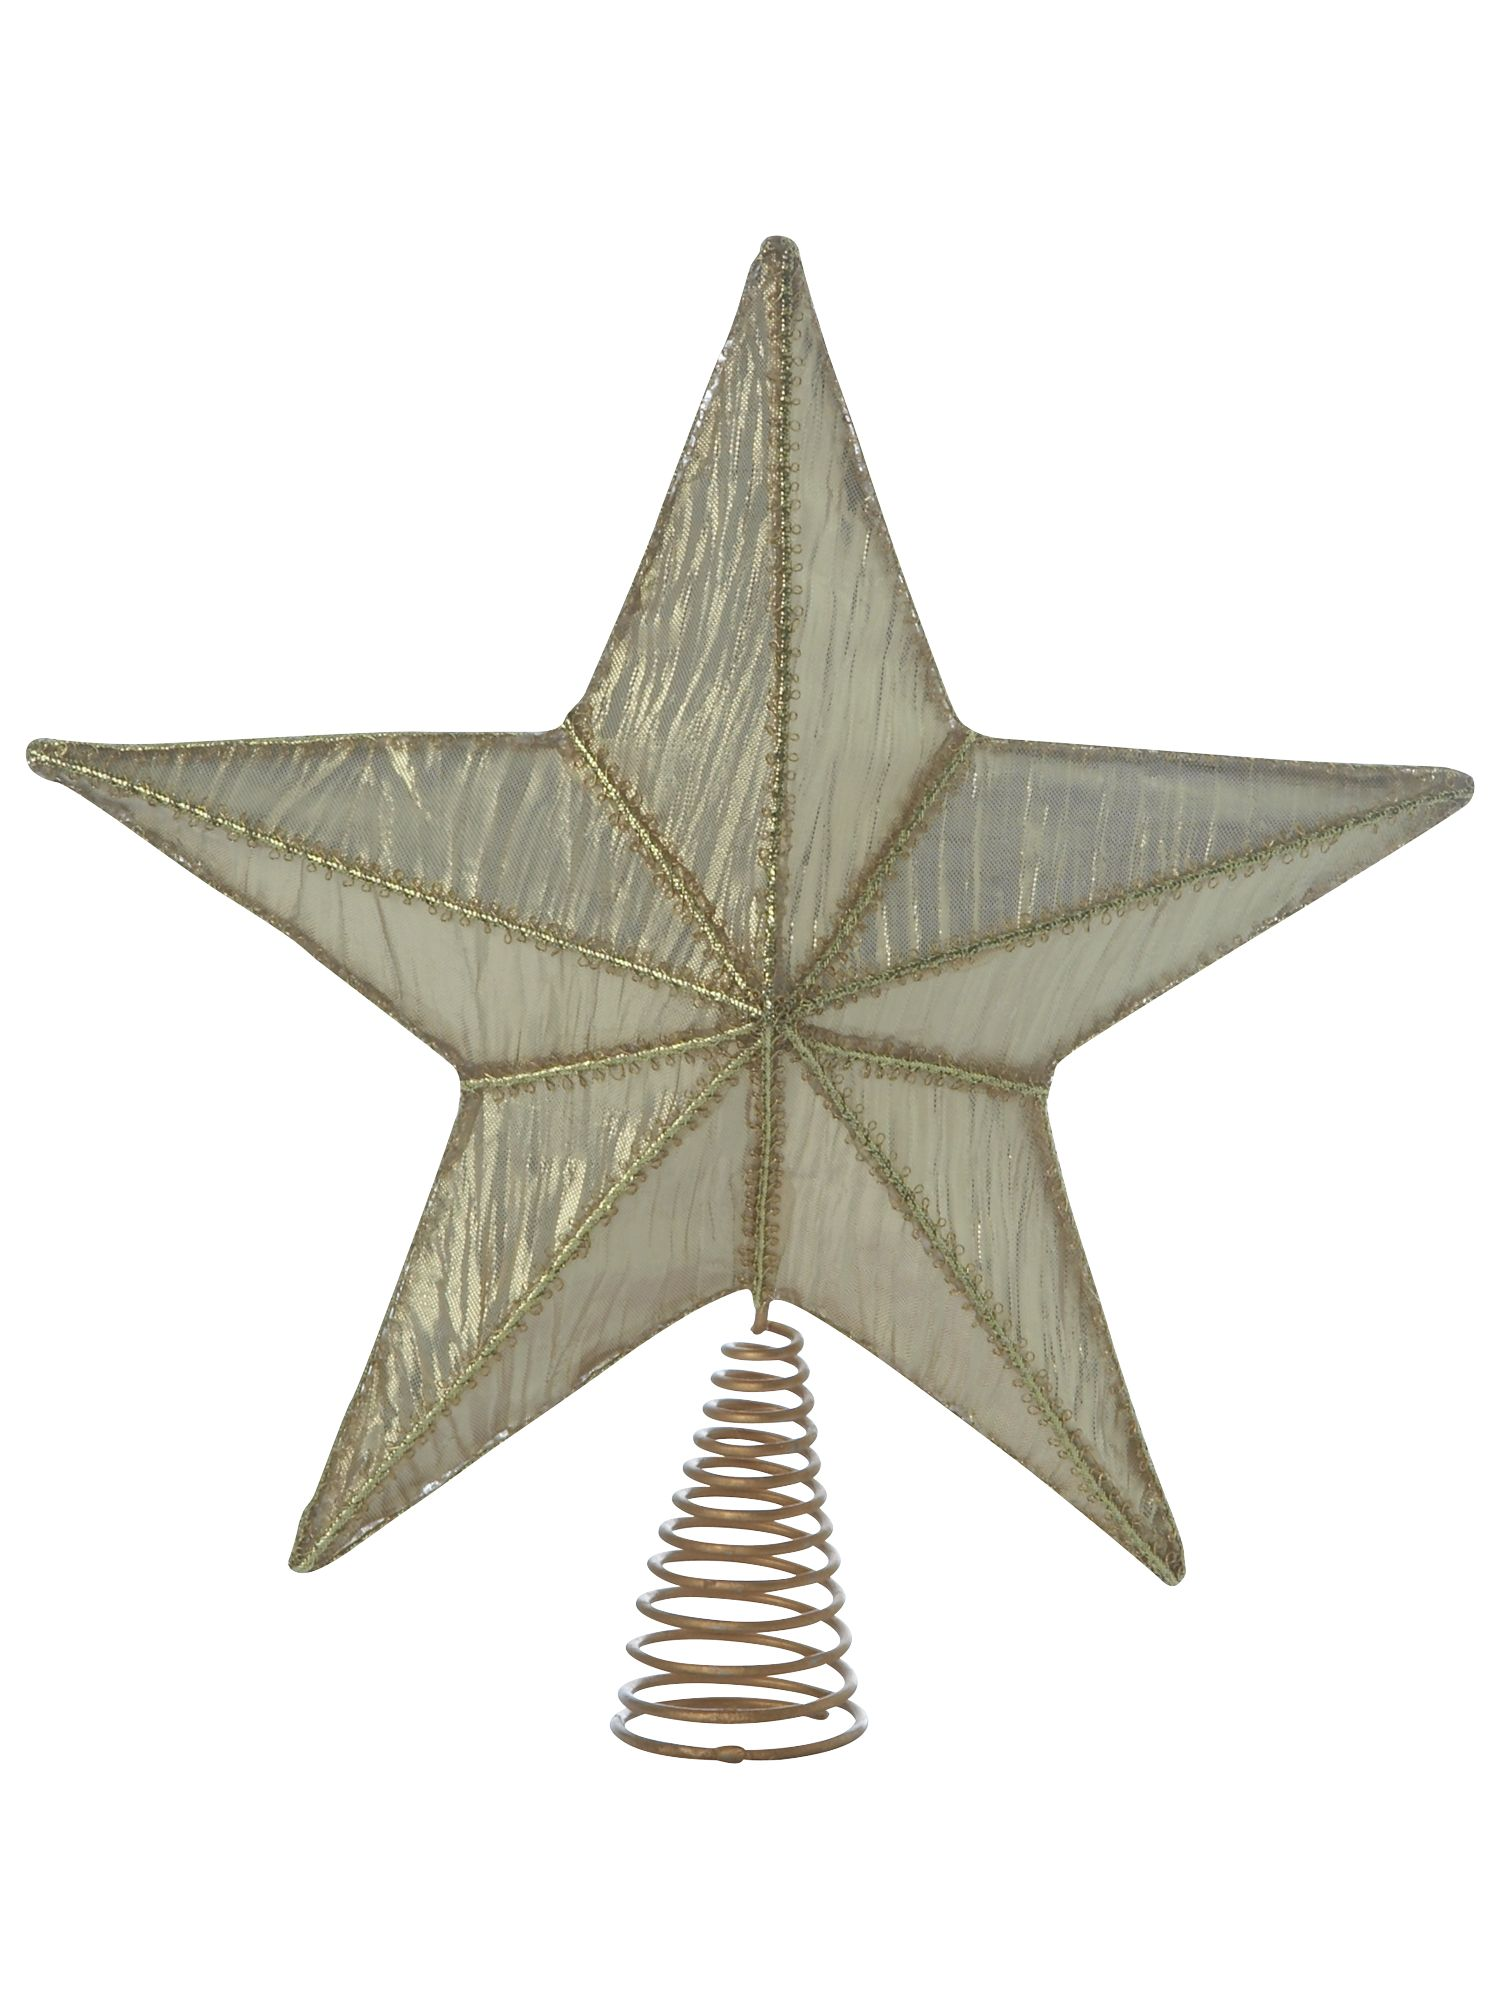 Linea Renaissance gold tree topper